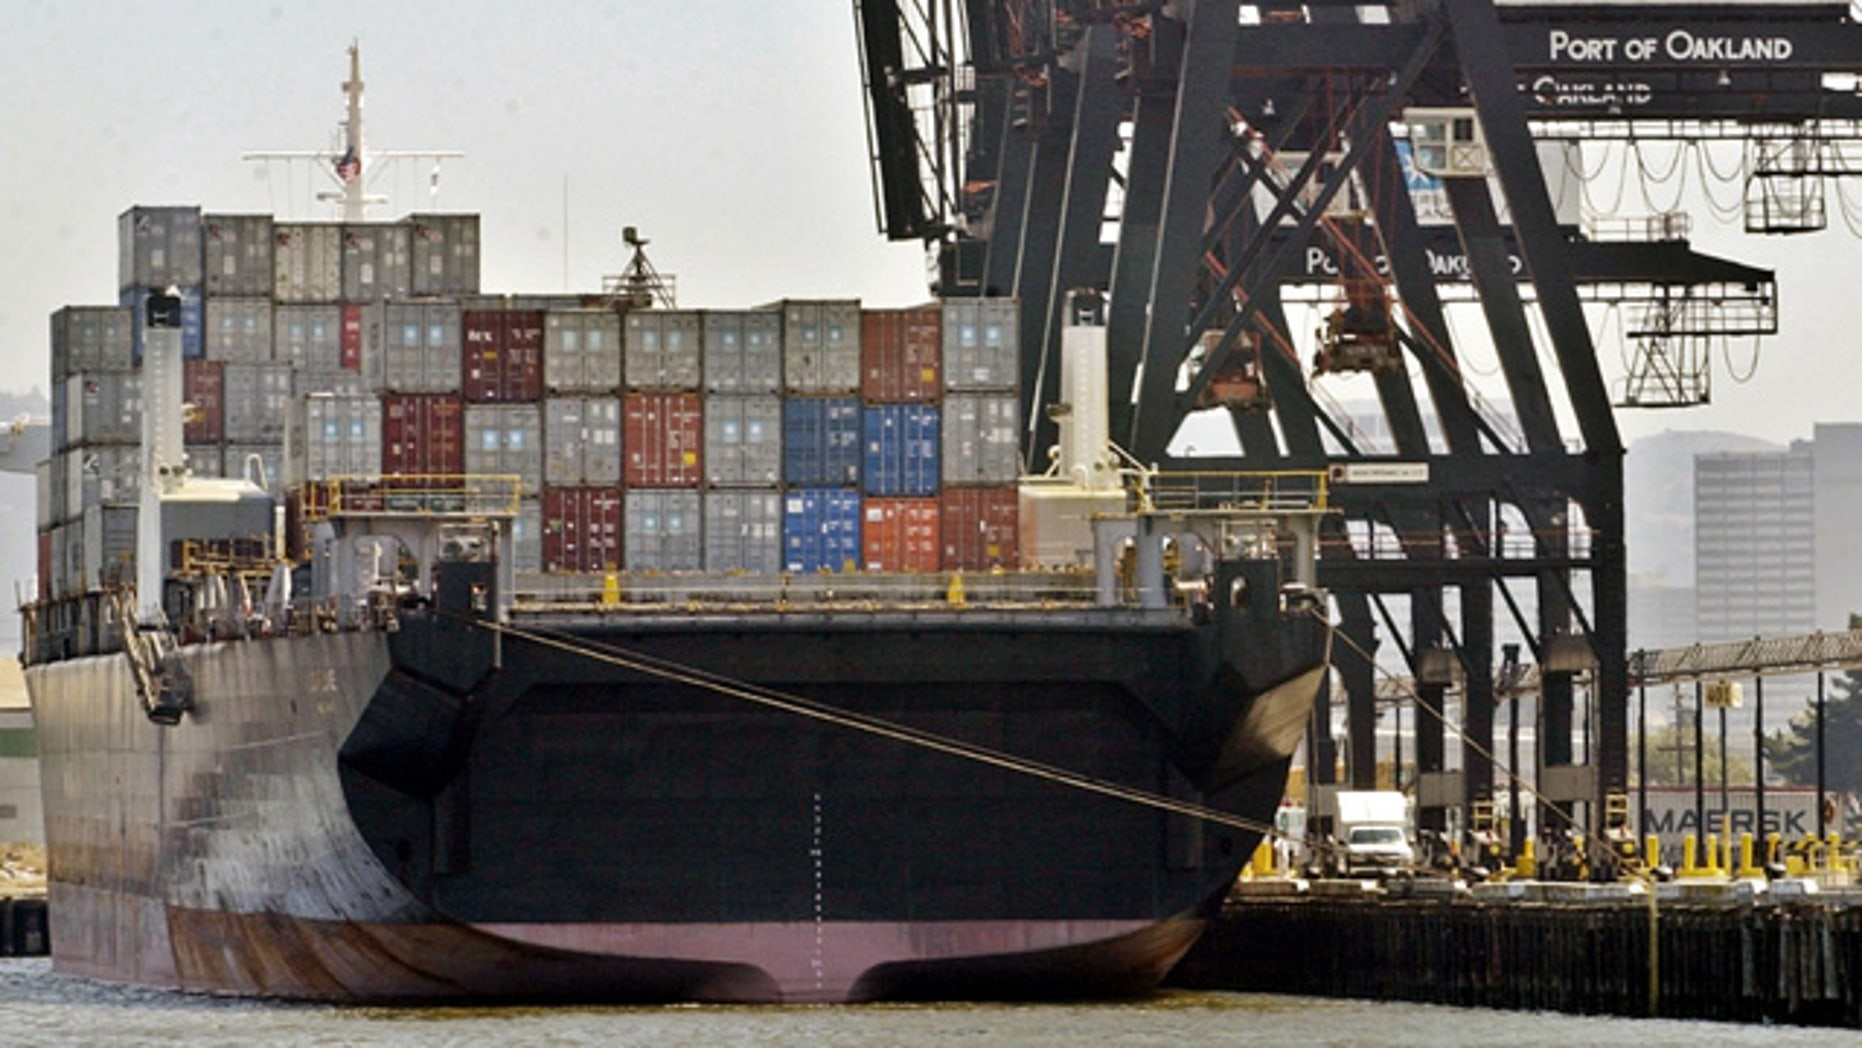 FILE: A container ship docked at Port of Oakland.